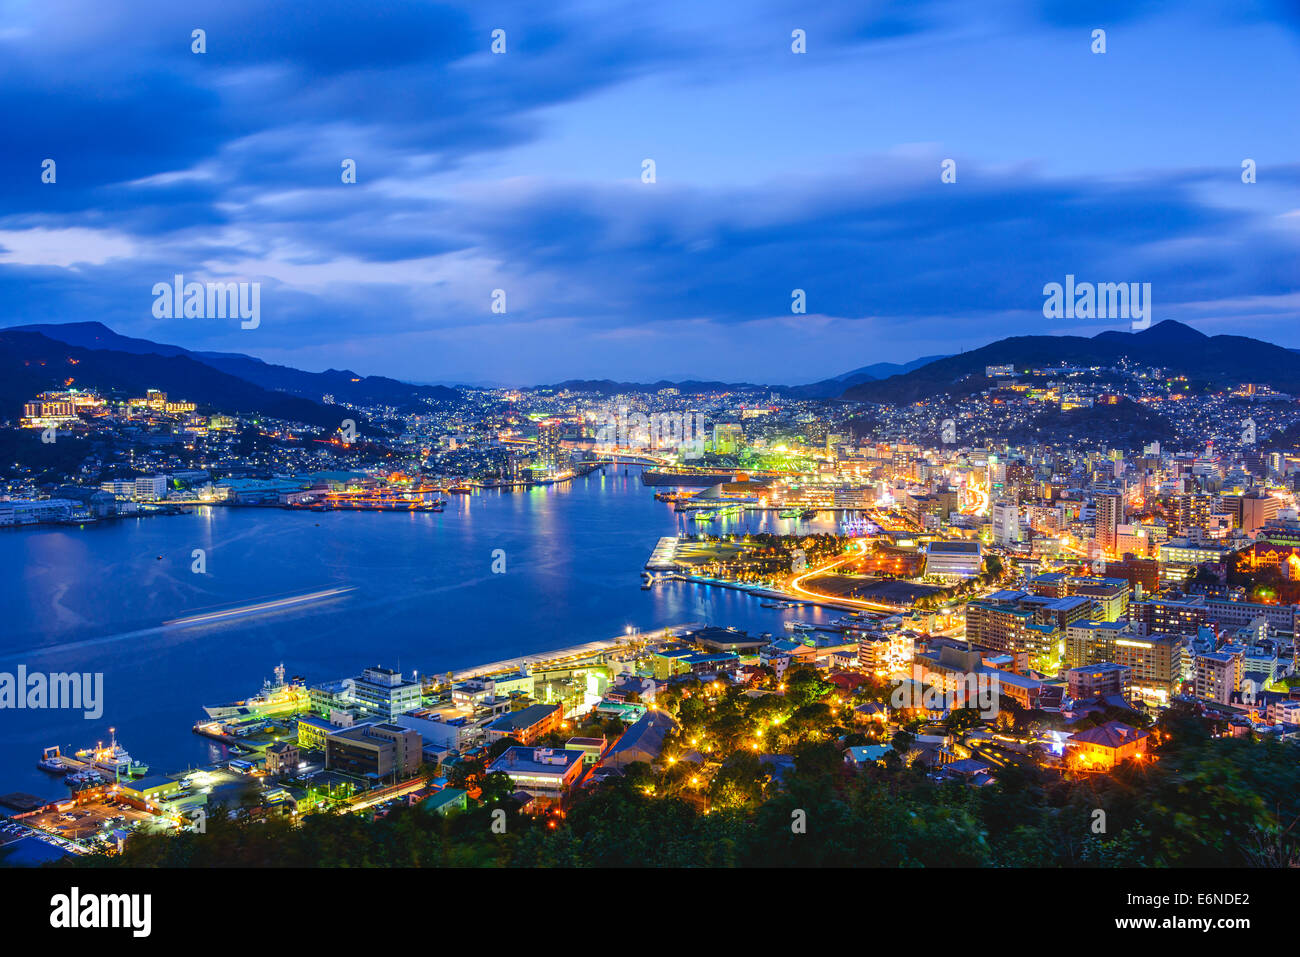 Nagasaki, Japan city skyline at dusk. - Stock Image